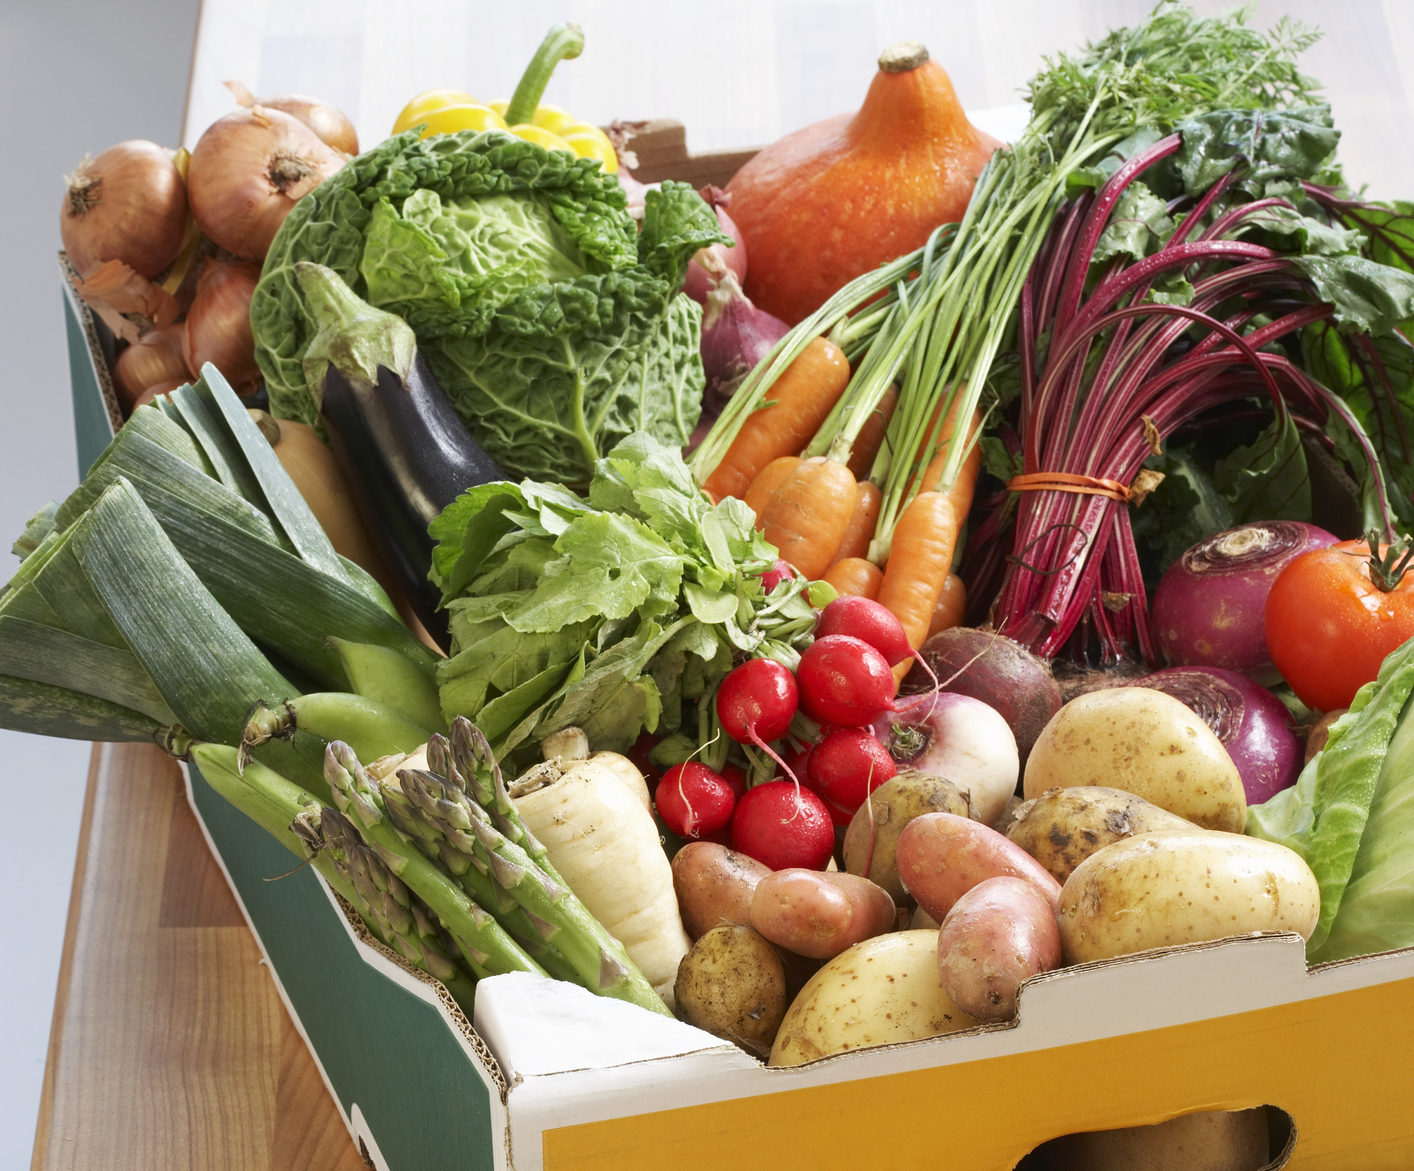 5 Reasons Fruit And Veggies From Csa Farms Are Different